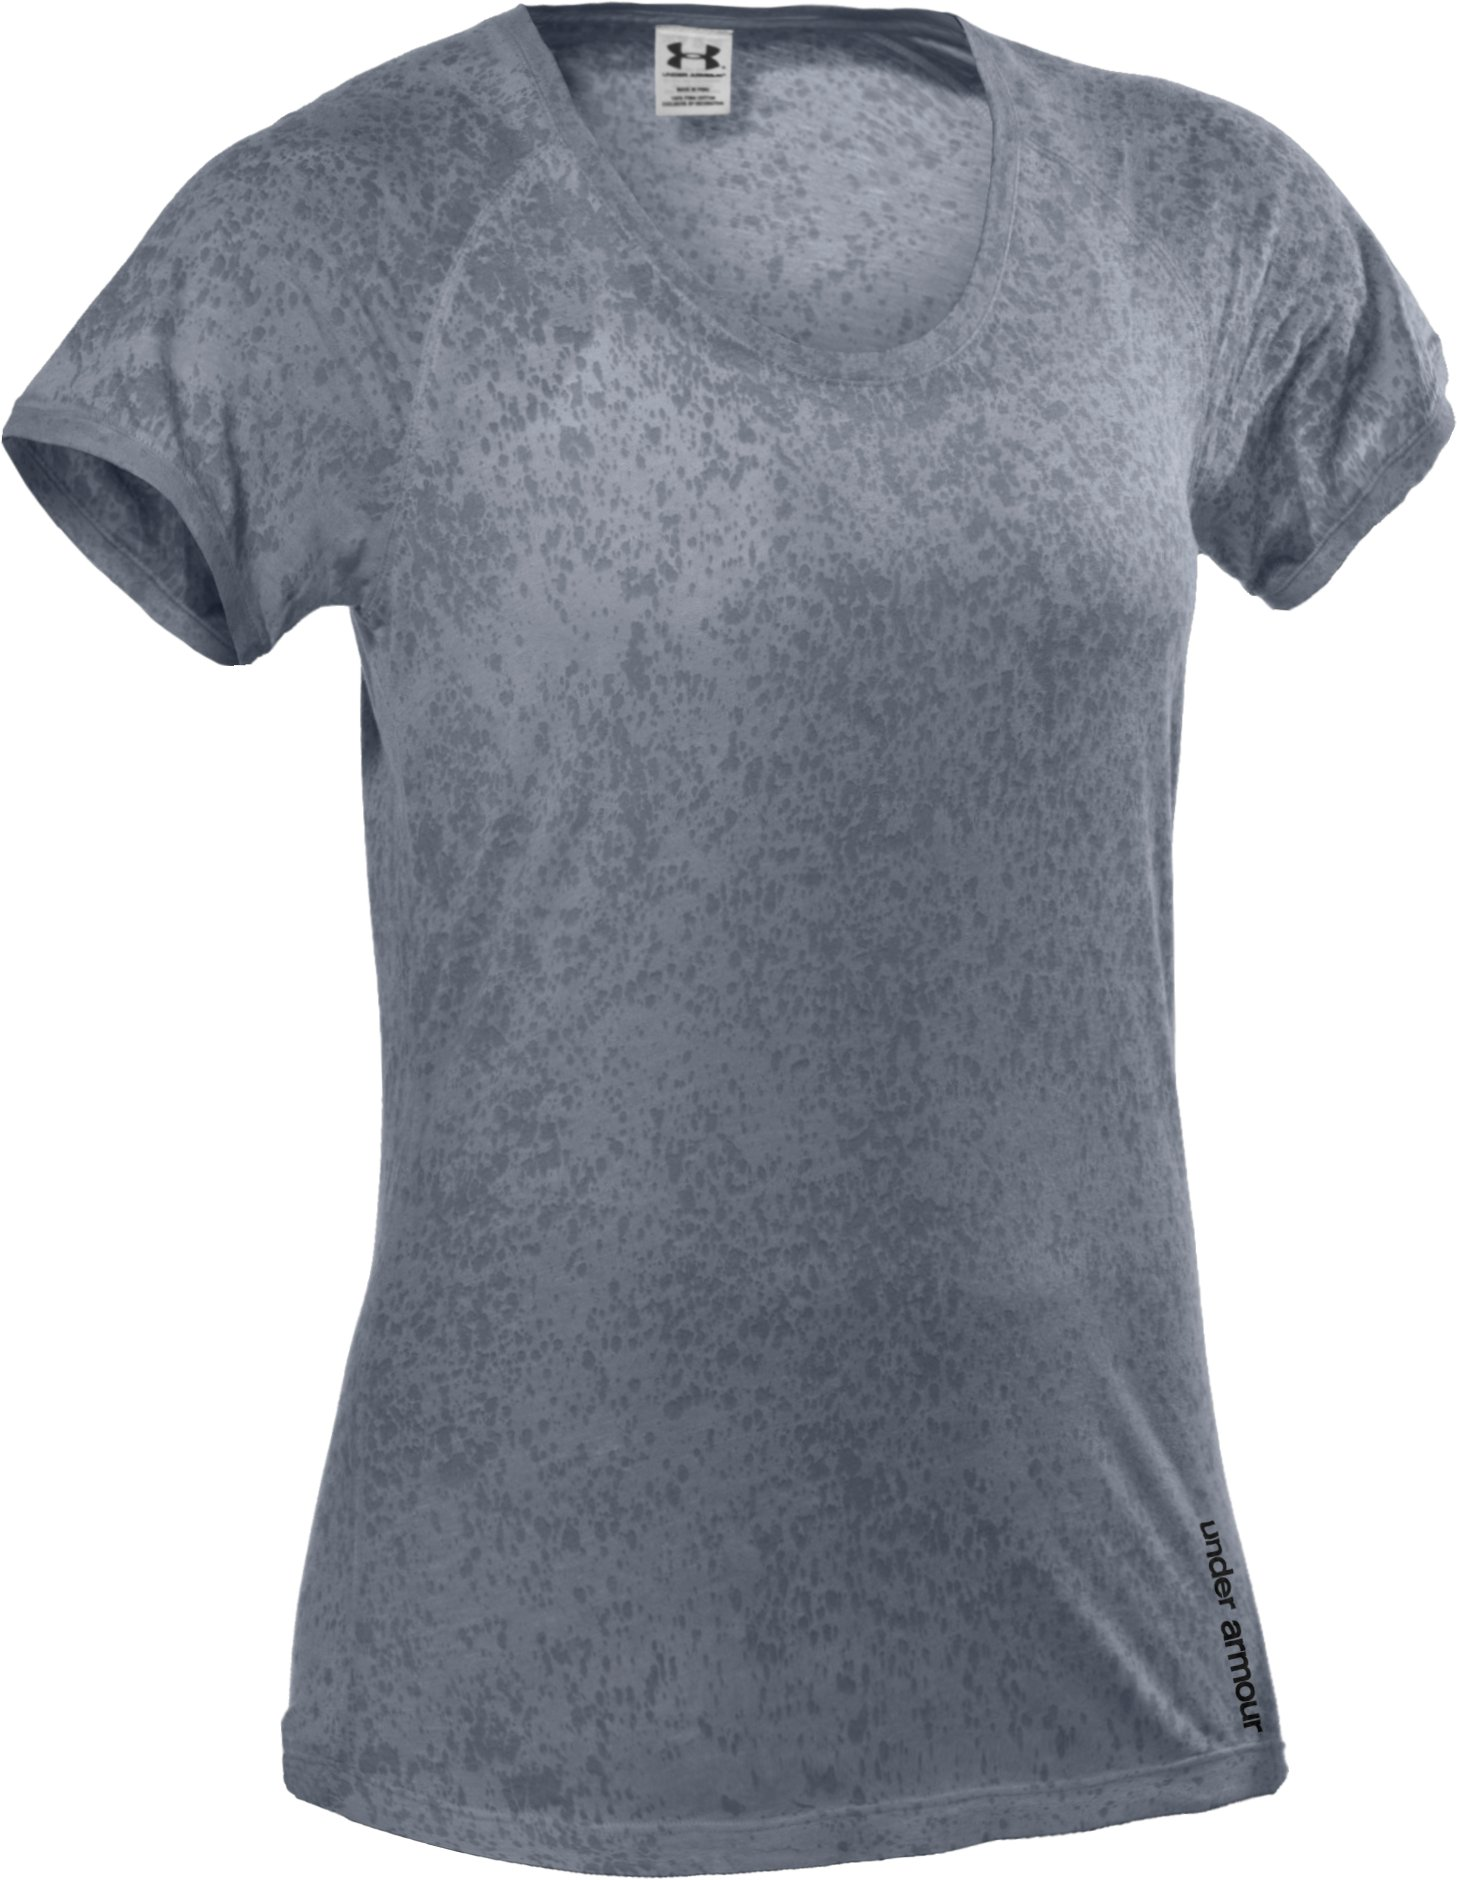 Women's Charged Cotton® Orchid Wash T-Shirt, Steel